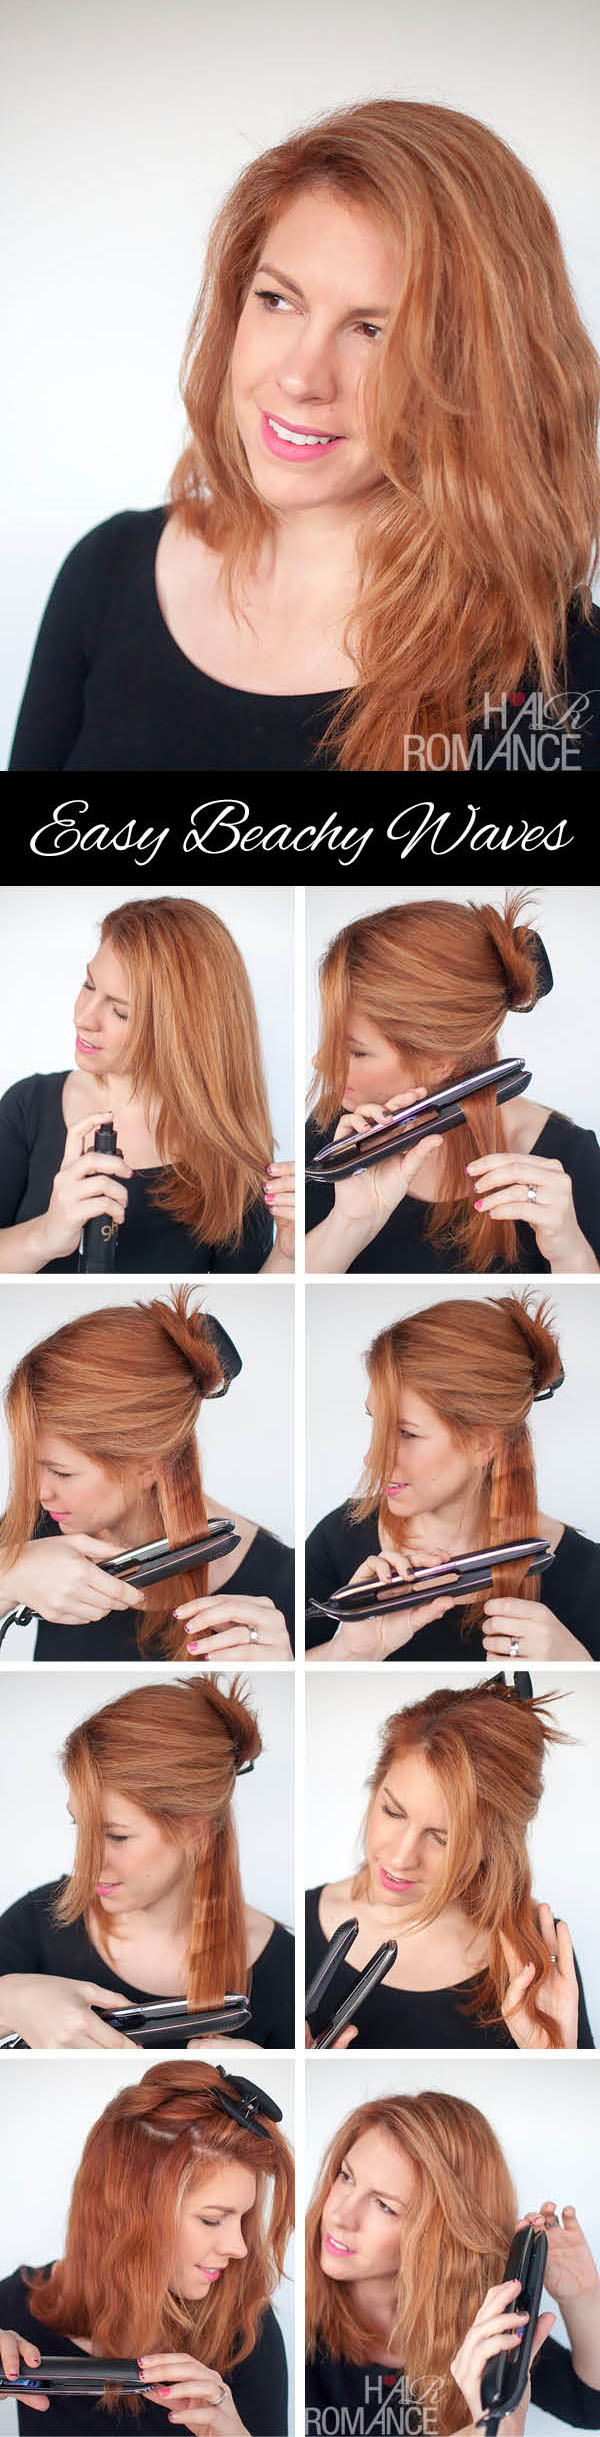 Hair Romance - easy how to beachy waves with ghd